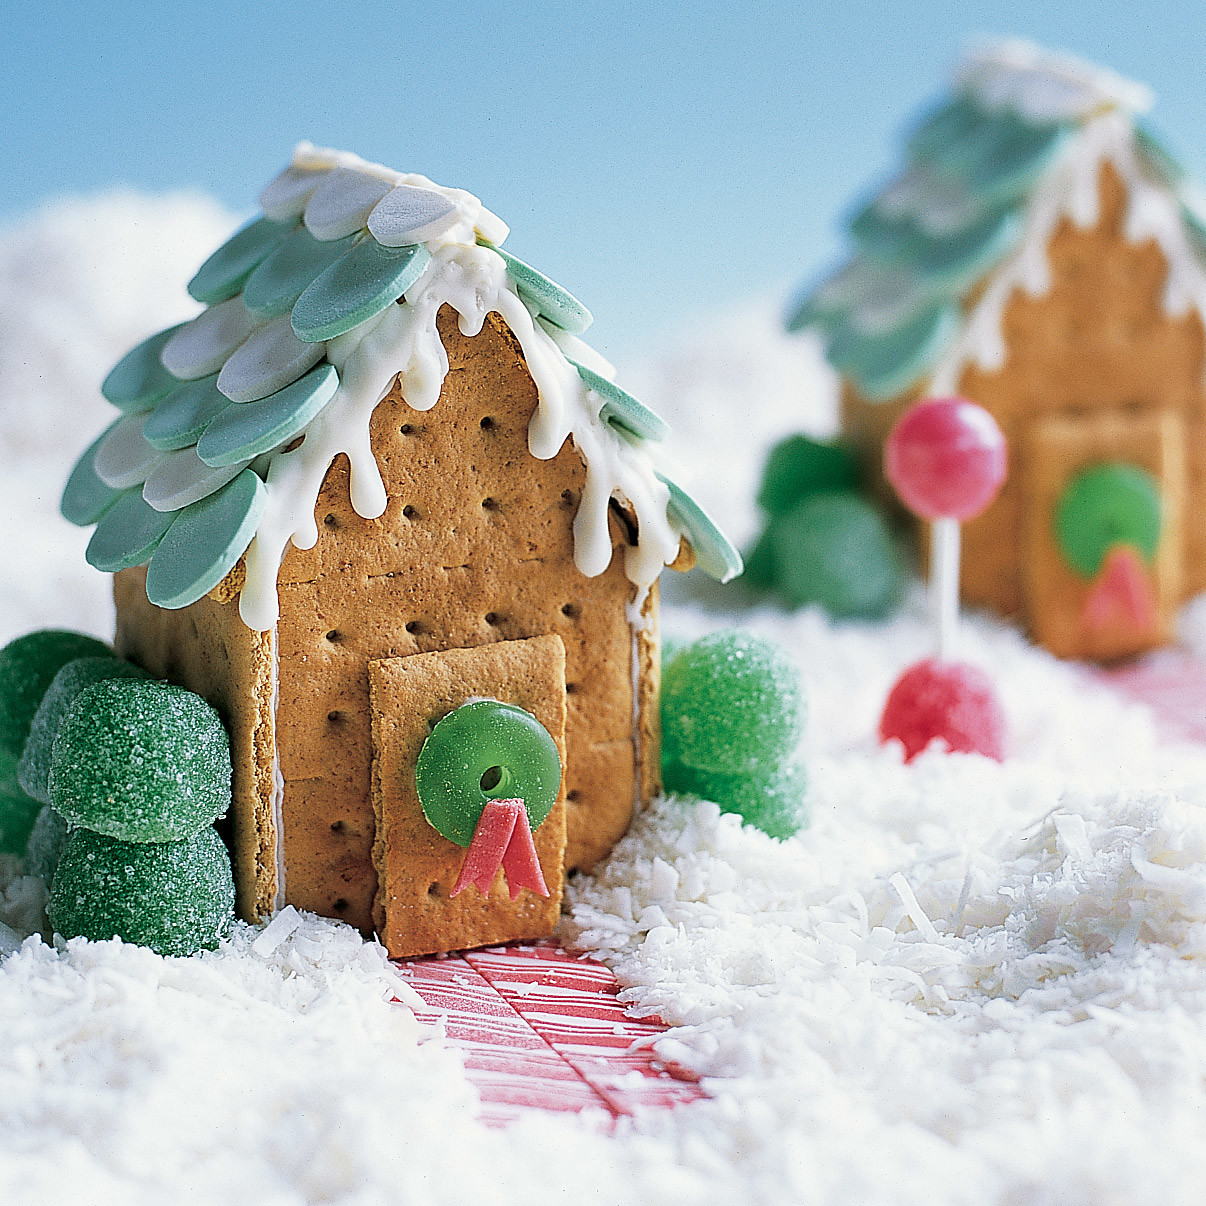 Decoration ideas wallpapers christmas decorations tree for New wallpaper ideas